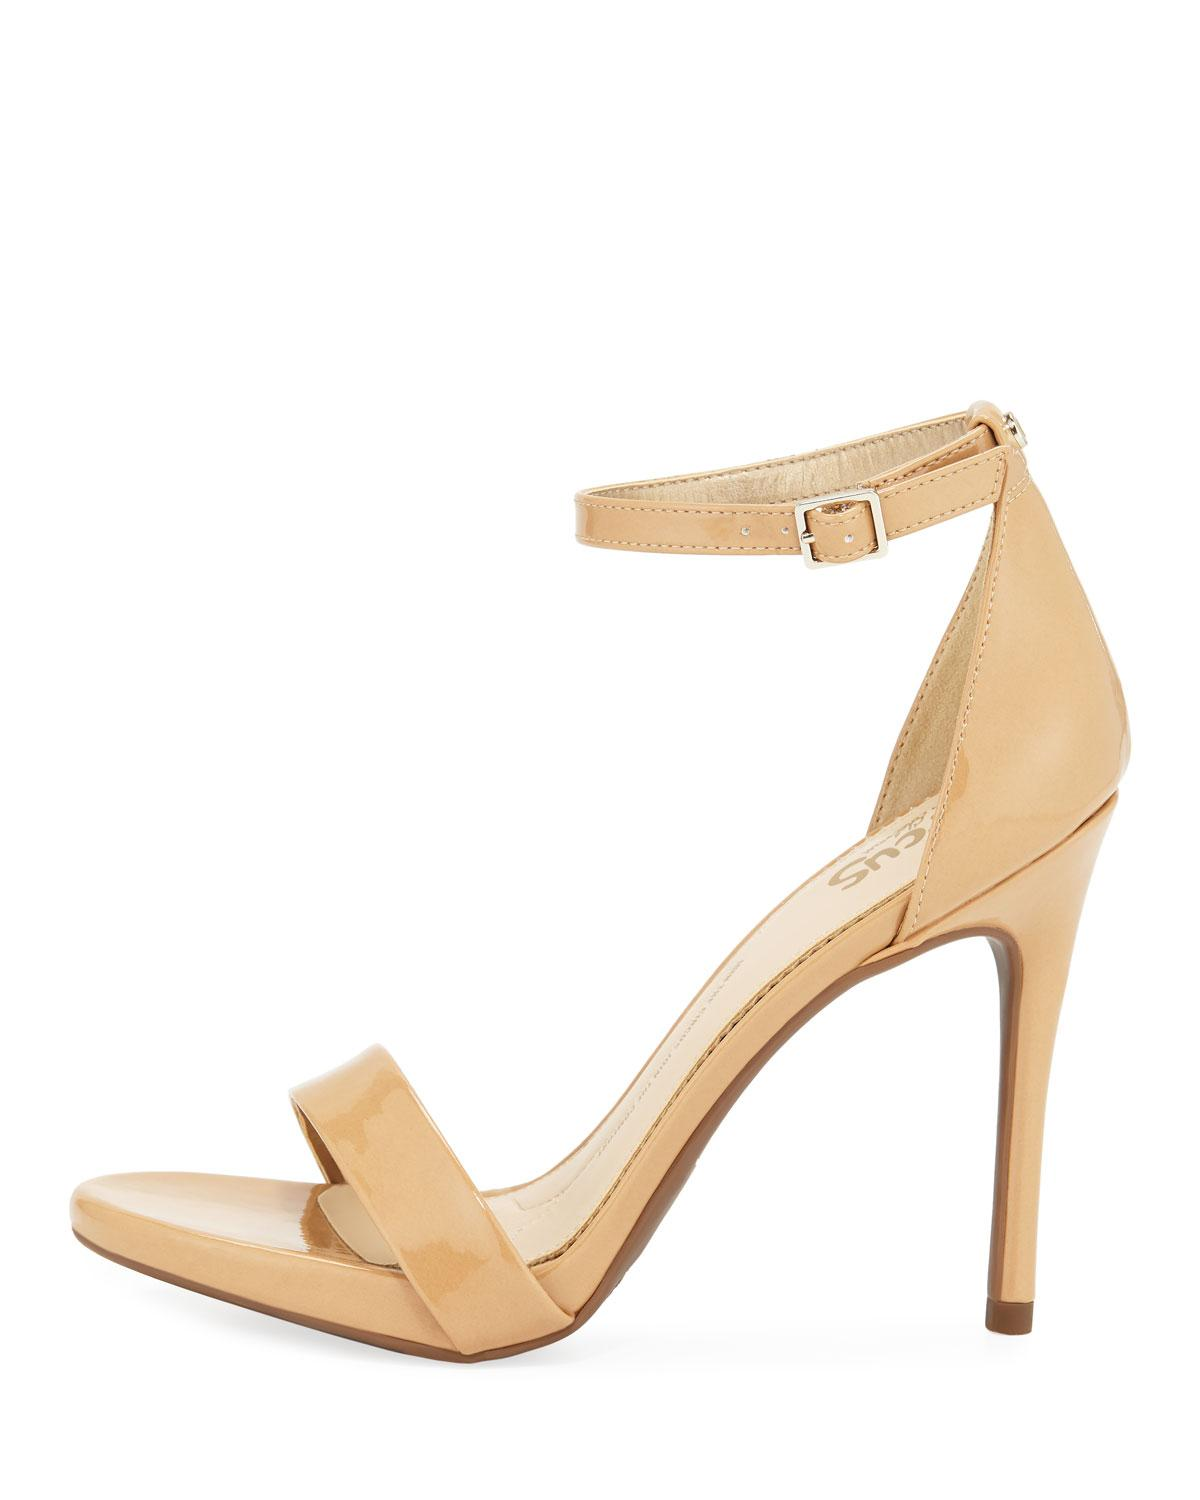 c4d5f43cd45 Lyst - Circus by Sam Edelman Angela Faux-patent High-heel Sandals in Natural